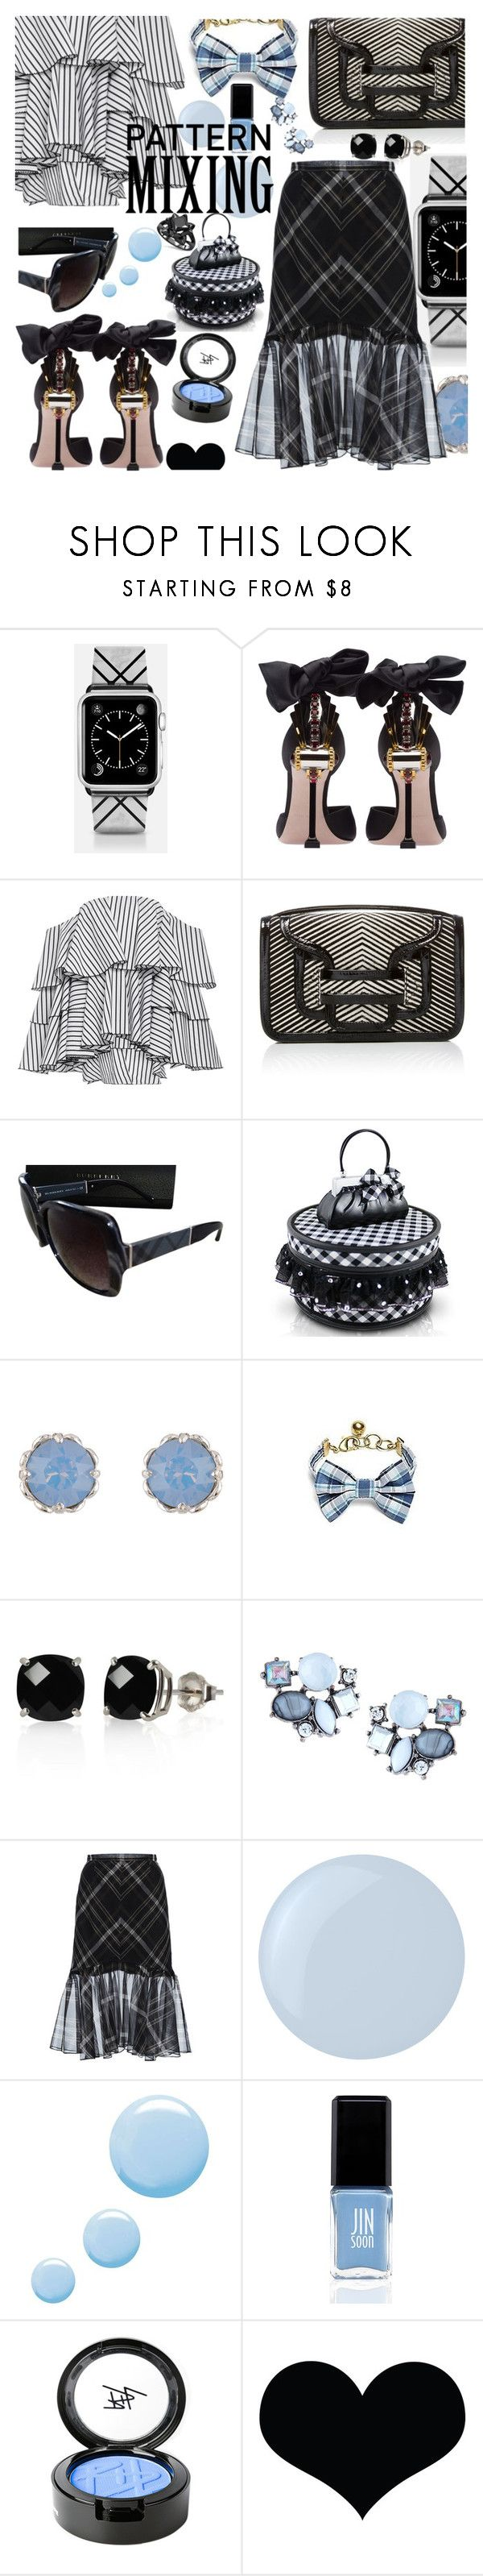 """Pattern Mixing"" by anin-kutak ❤ liked on Polyvore featuring Casetify, Miu Miu, Caroline Constas, Pierre Hardy, Burberry, Jacki Design, Accessorize, Brooks Brothers, Belk & Co. and Lydell NYC"